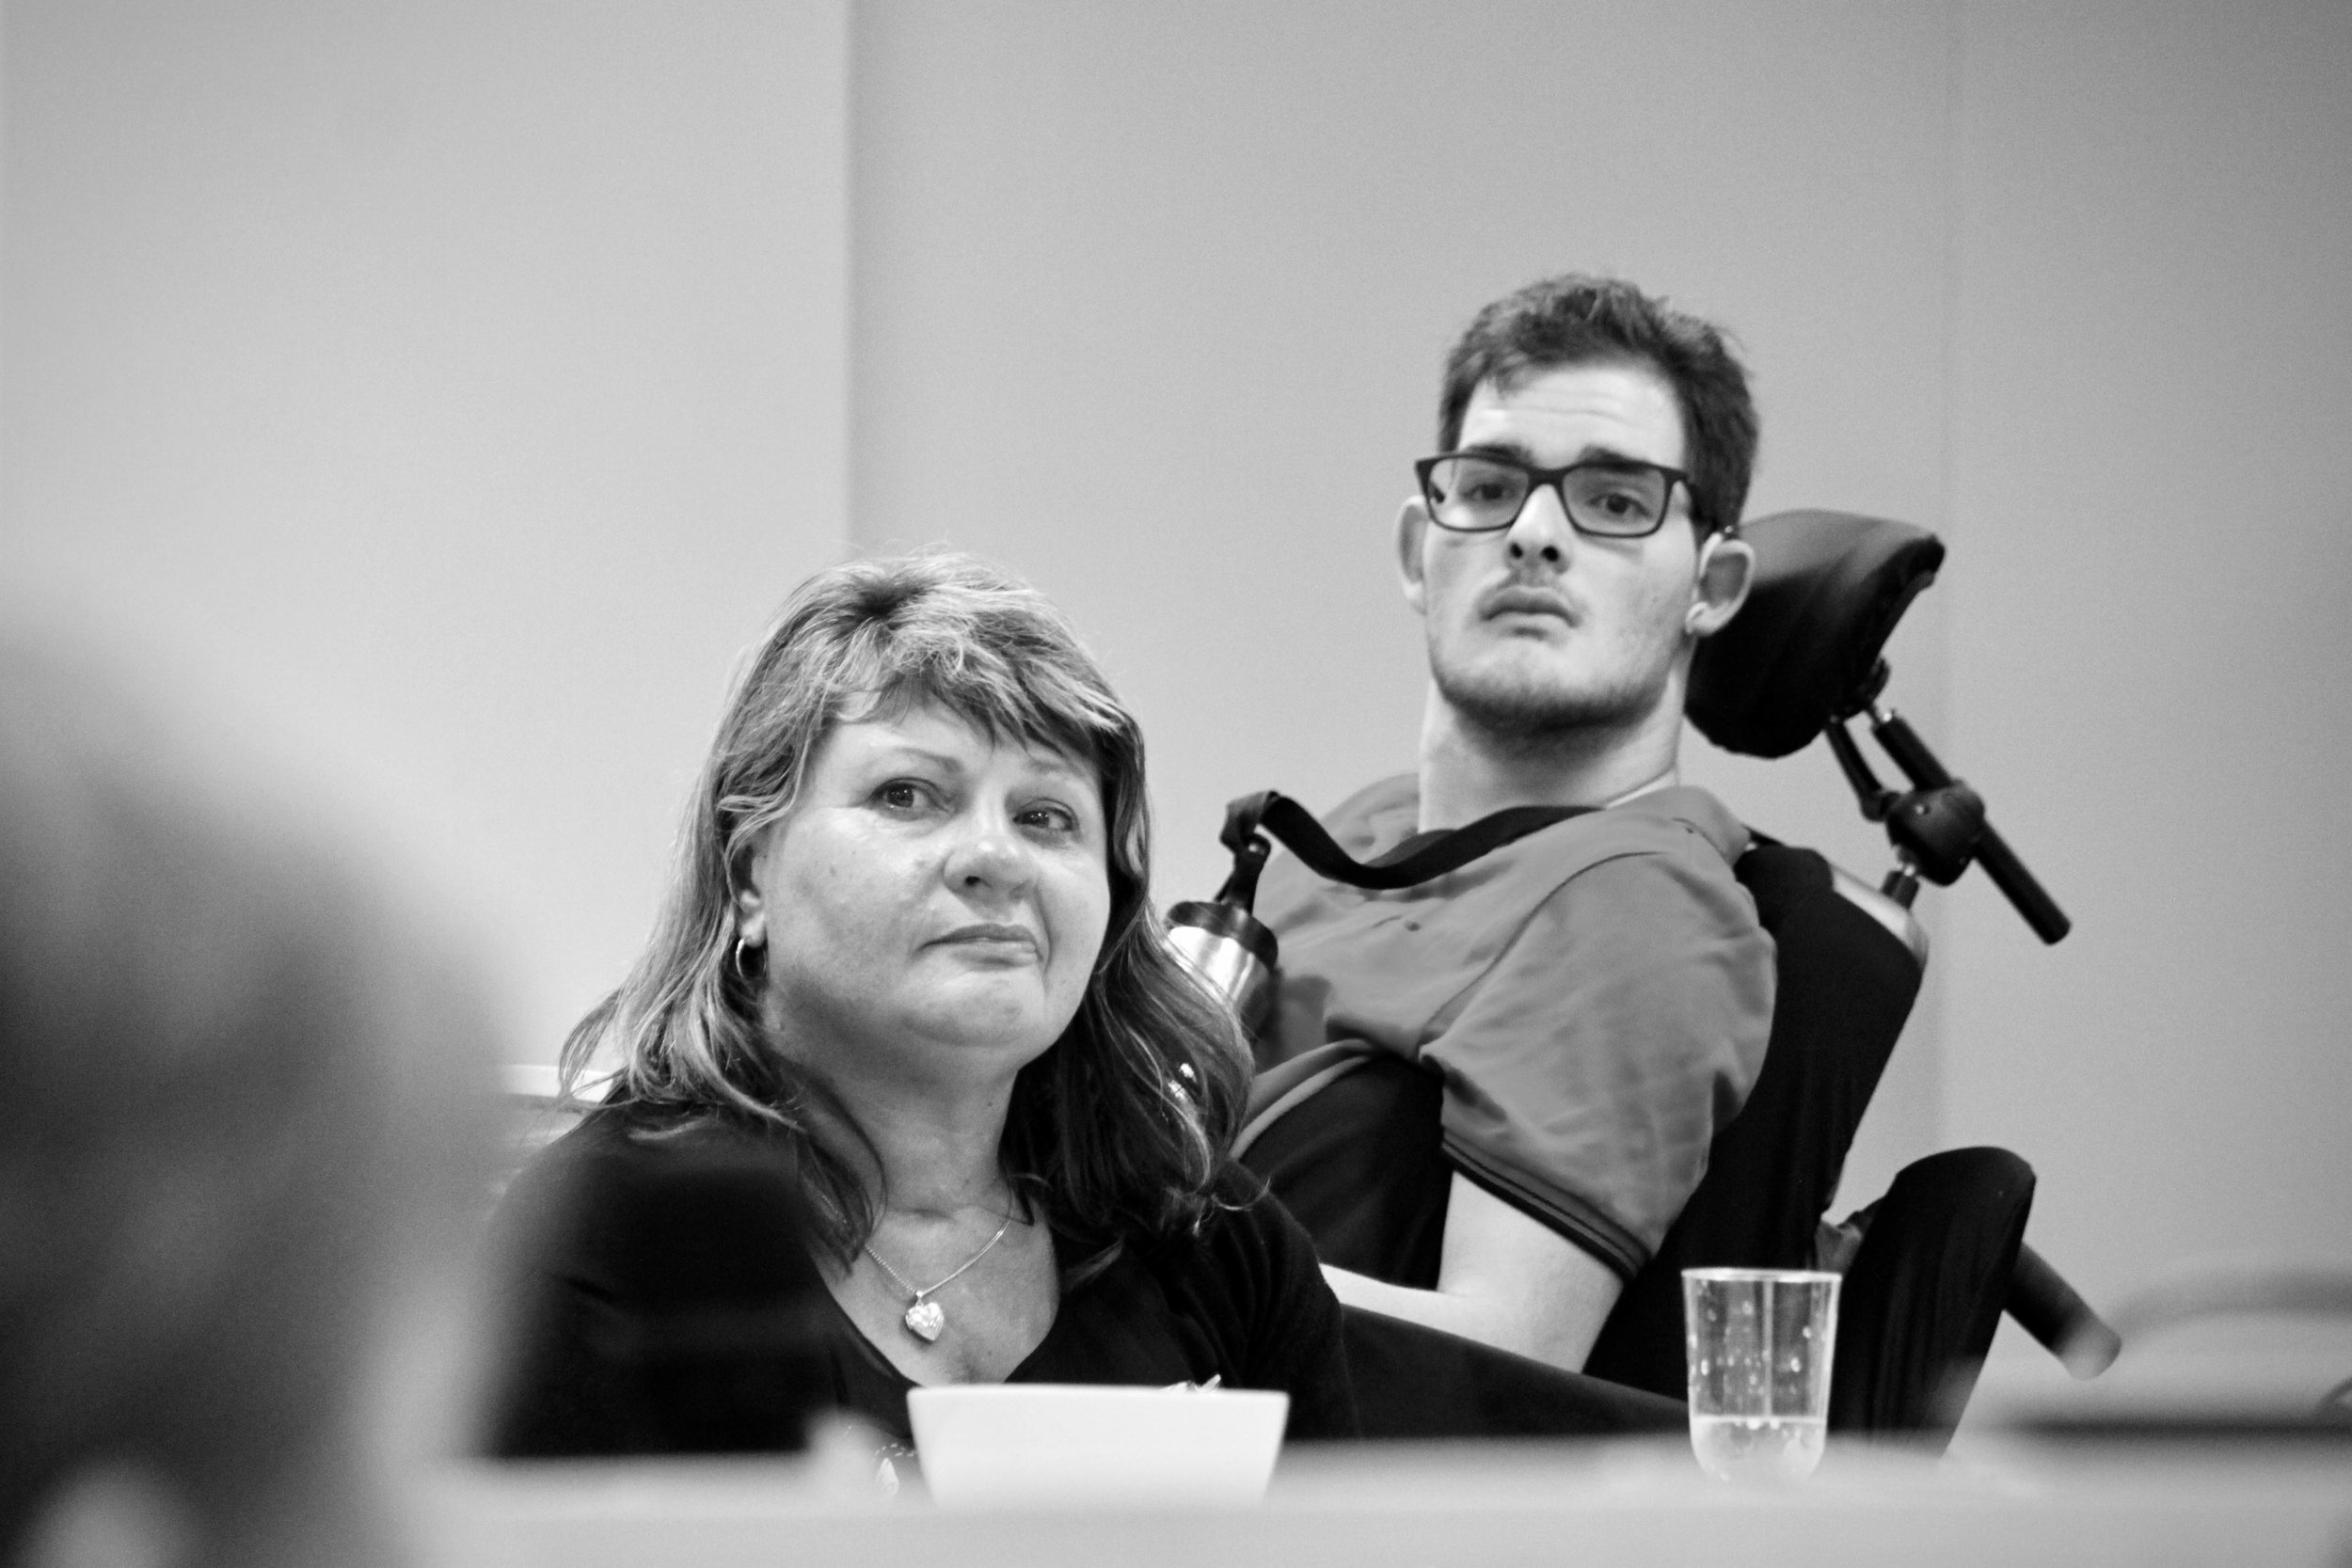 A mature woman and a young man are looking at a speaker out of shot. They are both seated, both with their heads raised up slightly. The young man wears a hearing aid and dark rimmed glasses. The woman's mouth is curled up on one side.